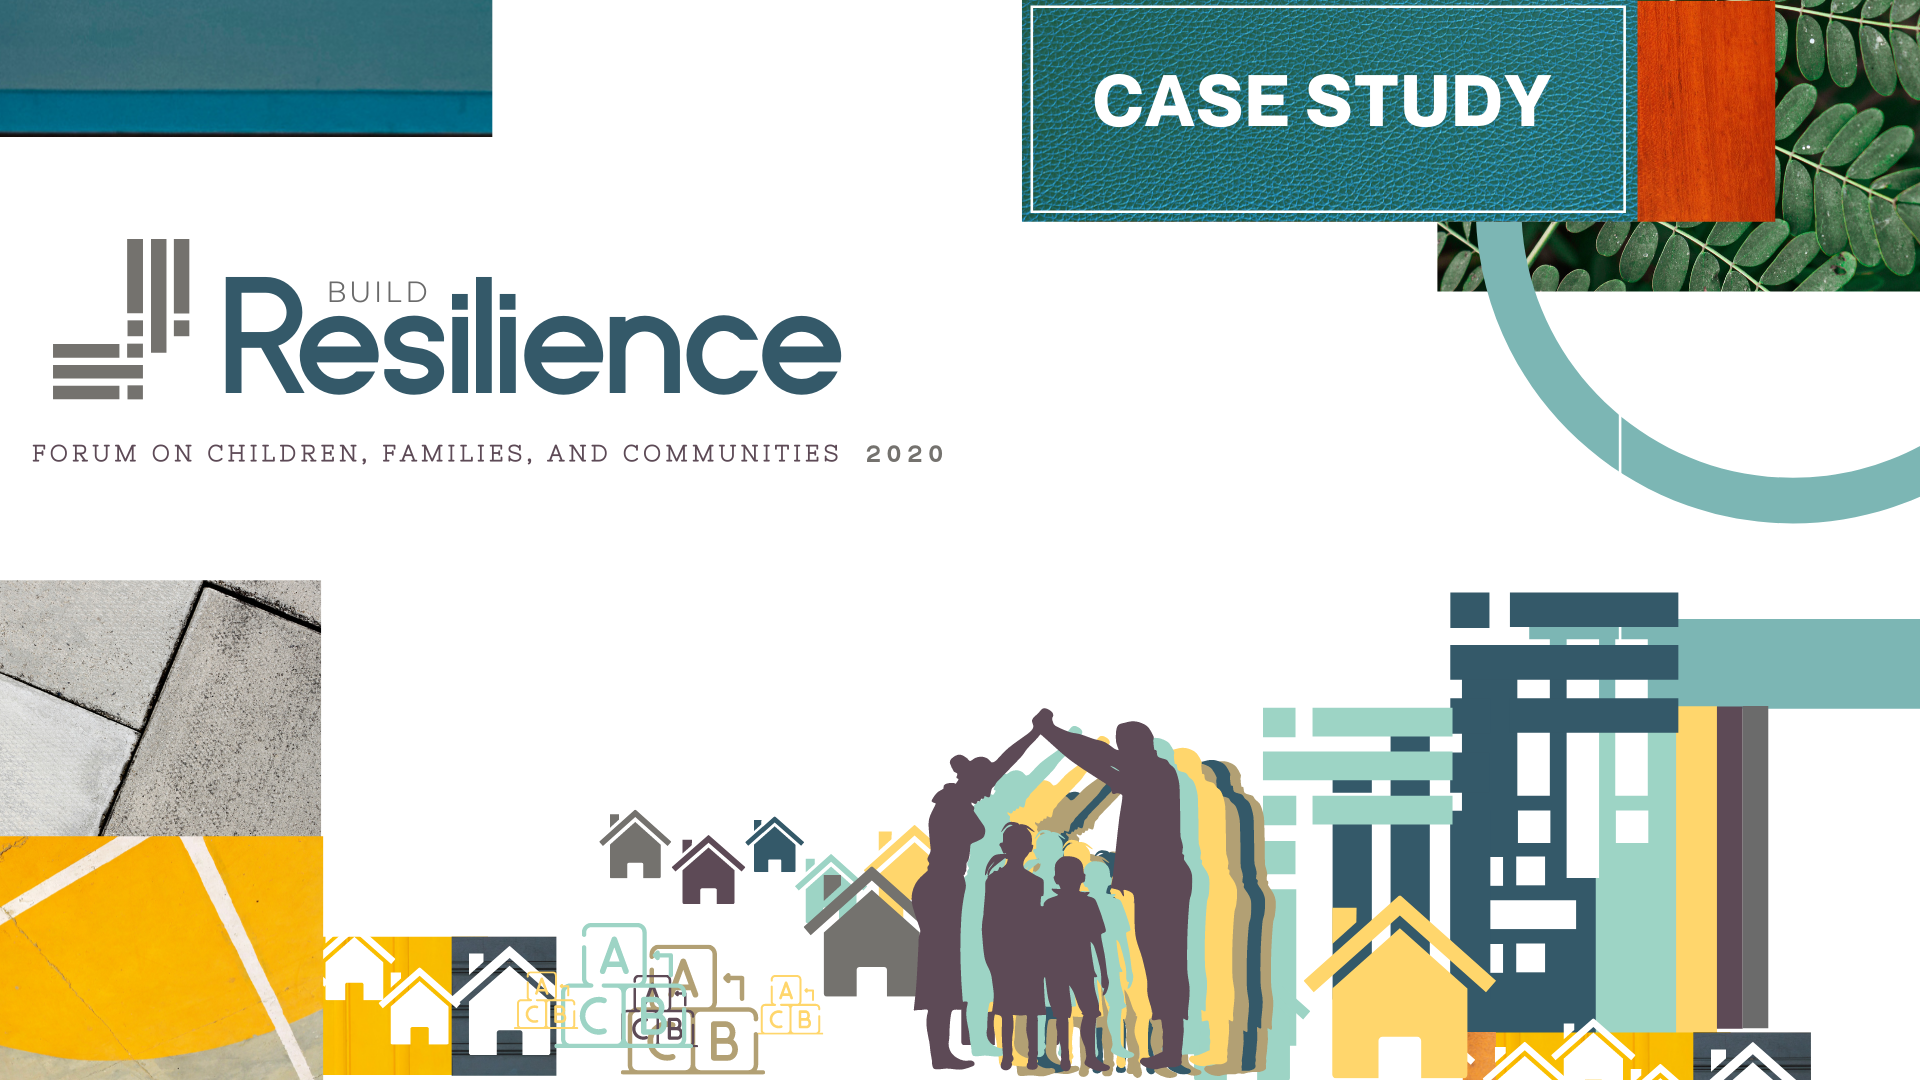 Title card for the Build Resilience case study by marketing and design agency Owl Street Studio